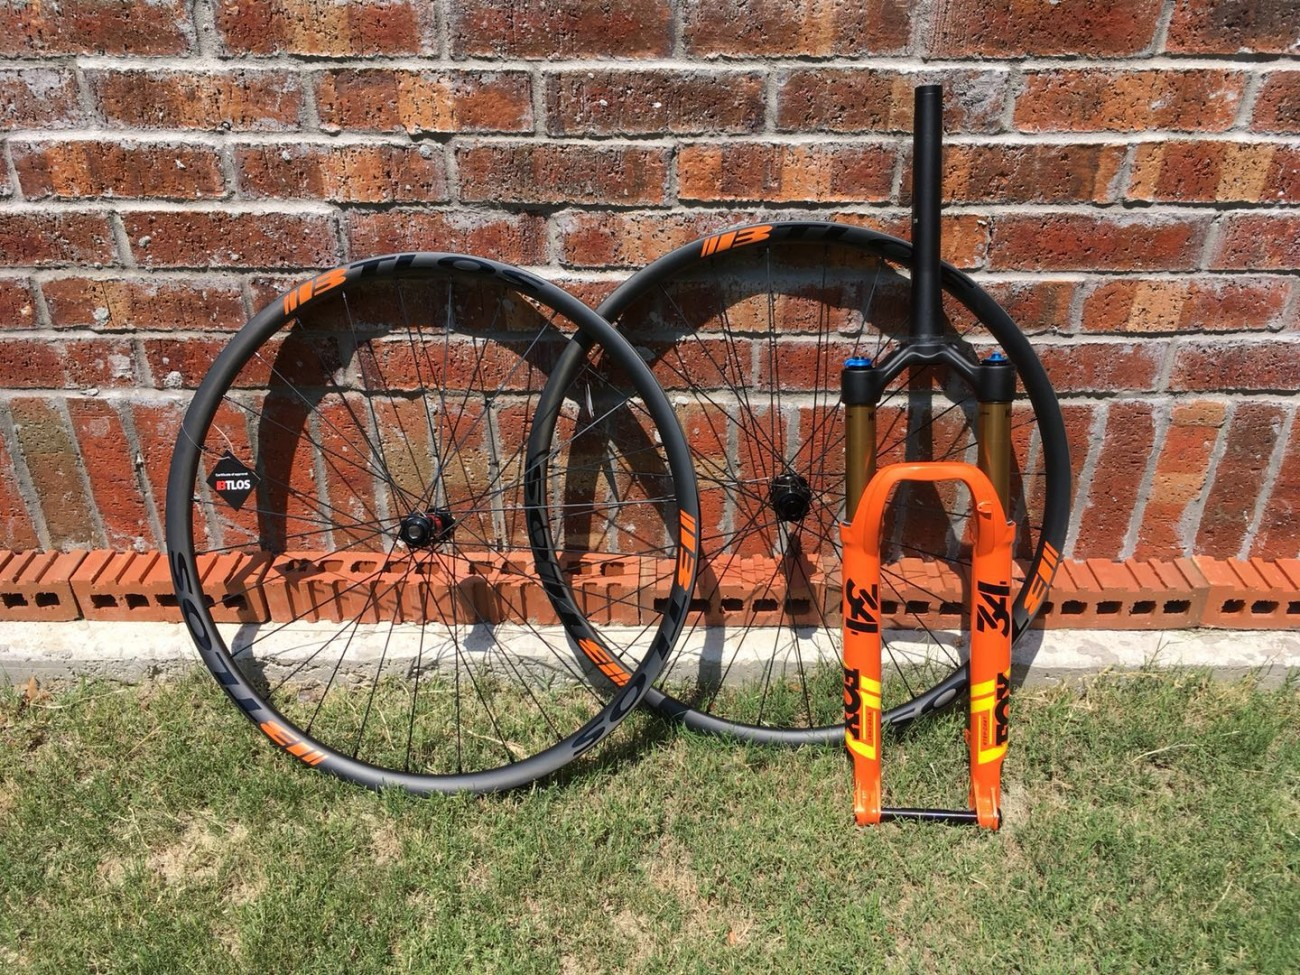 BTLOS carbon wheels and FOX fork